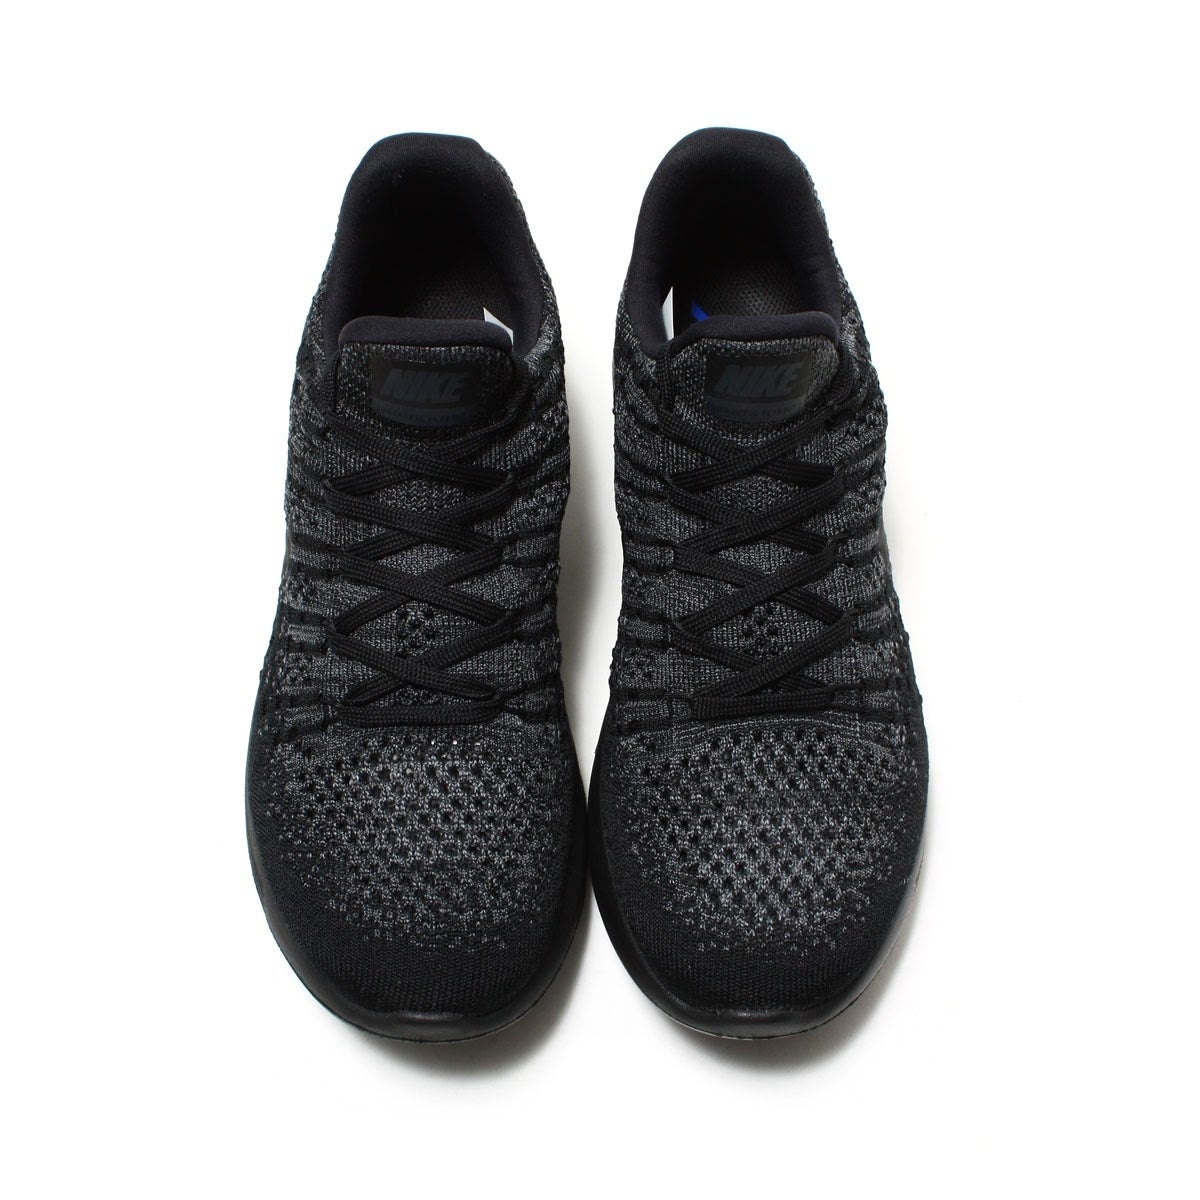 389fe5f3cca33 Shop Nike Mens Lunarepic Low Flyknit 2 Low Top Lace Up Running Sneaker -  Free Shipping Today - Overstock - 25893365